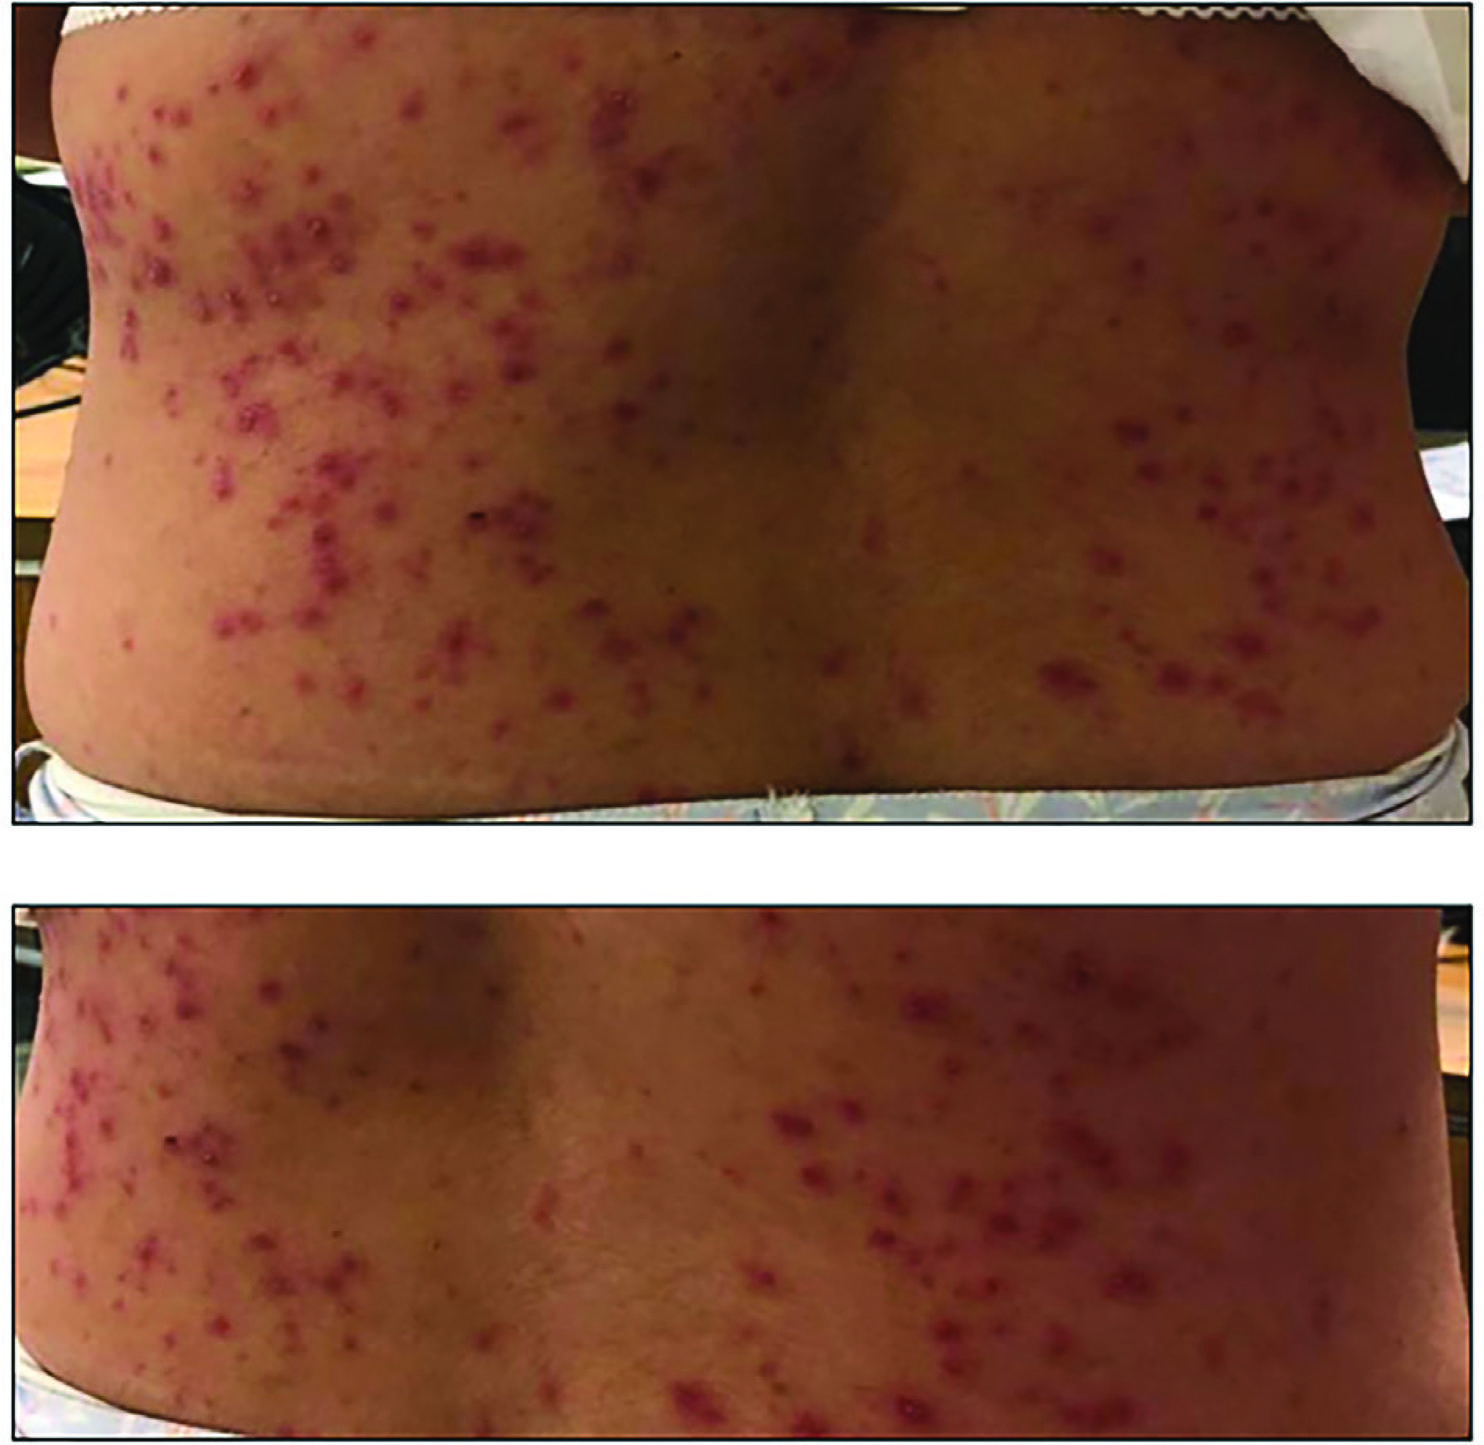 Petechial rash on the thorax of the patient.